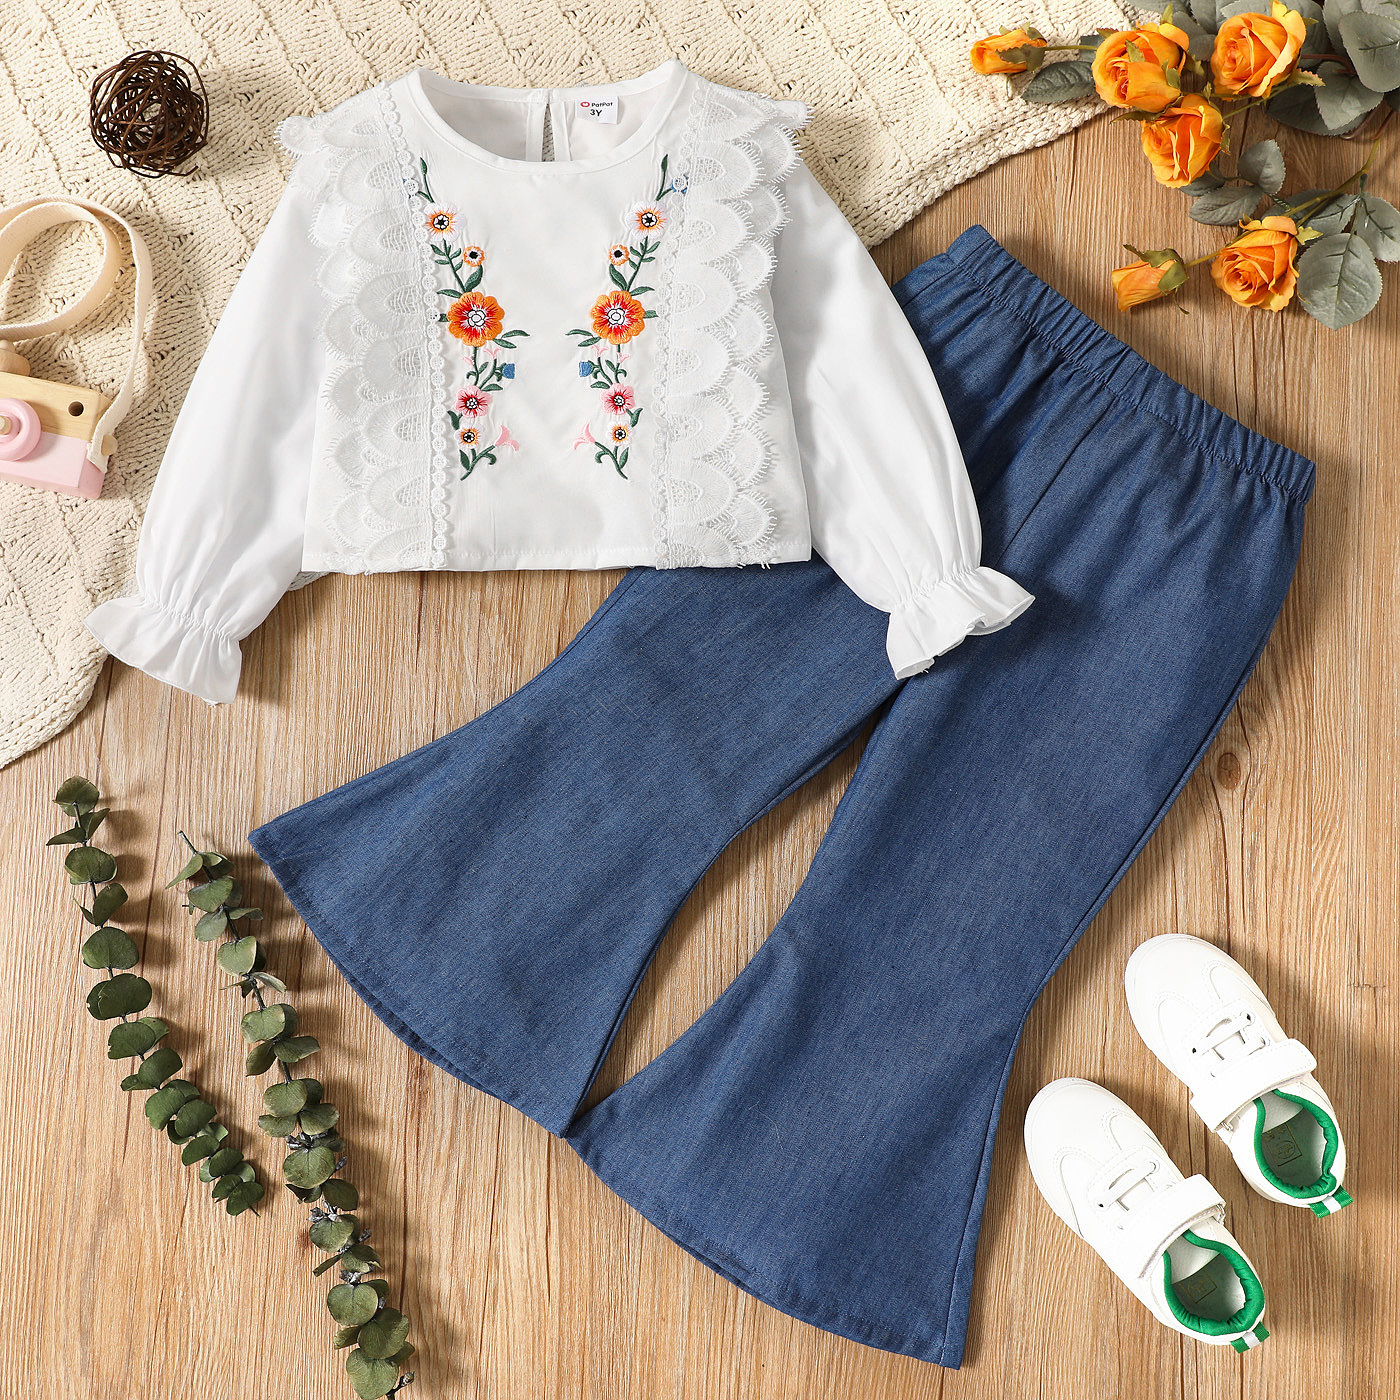 2-piece Toddler Girl Floral Embroidered Lace Design Long-sleeve Top and Flared Denim Jeans Set